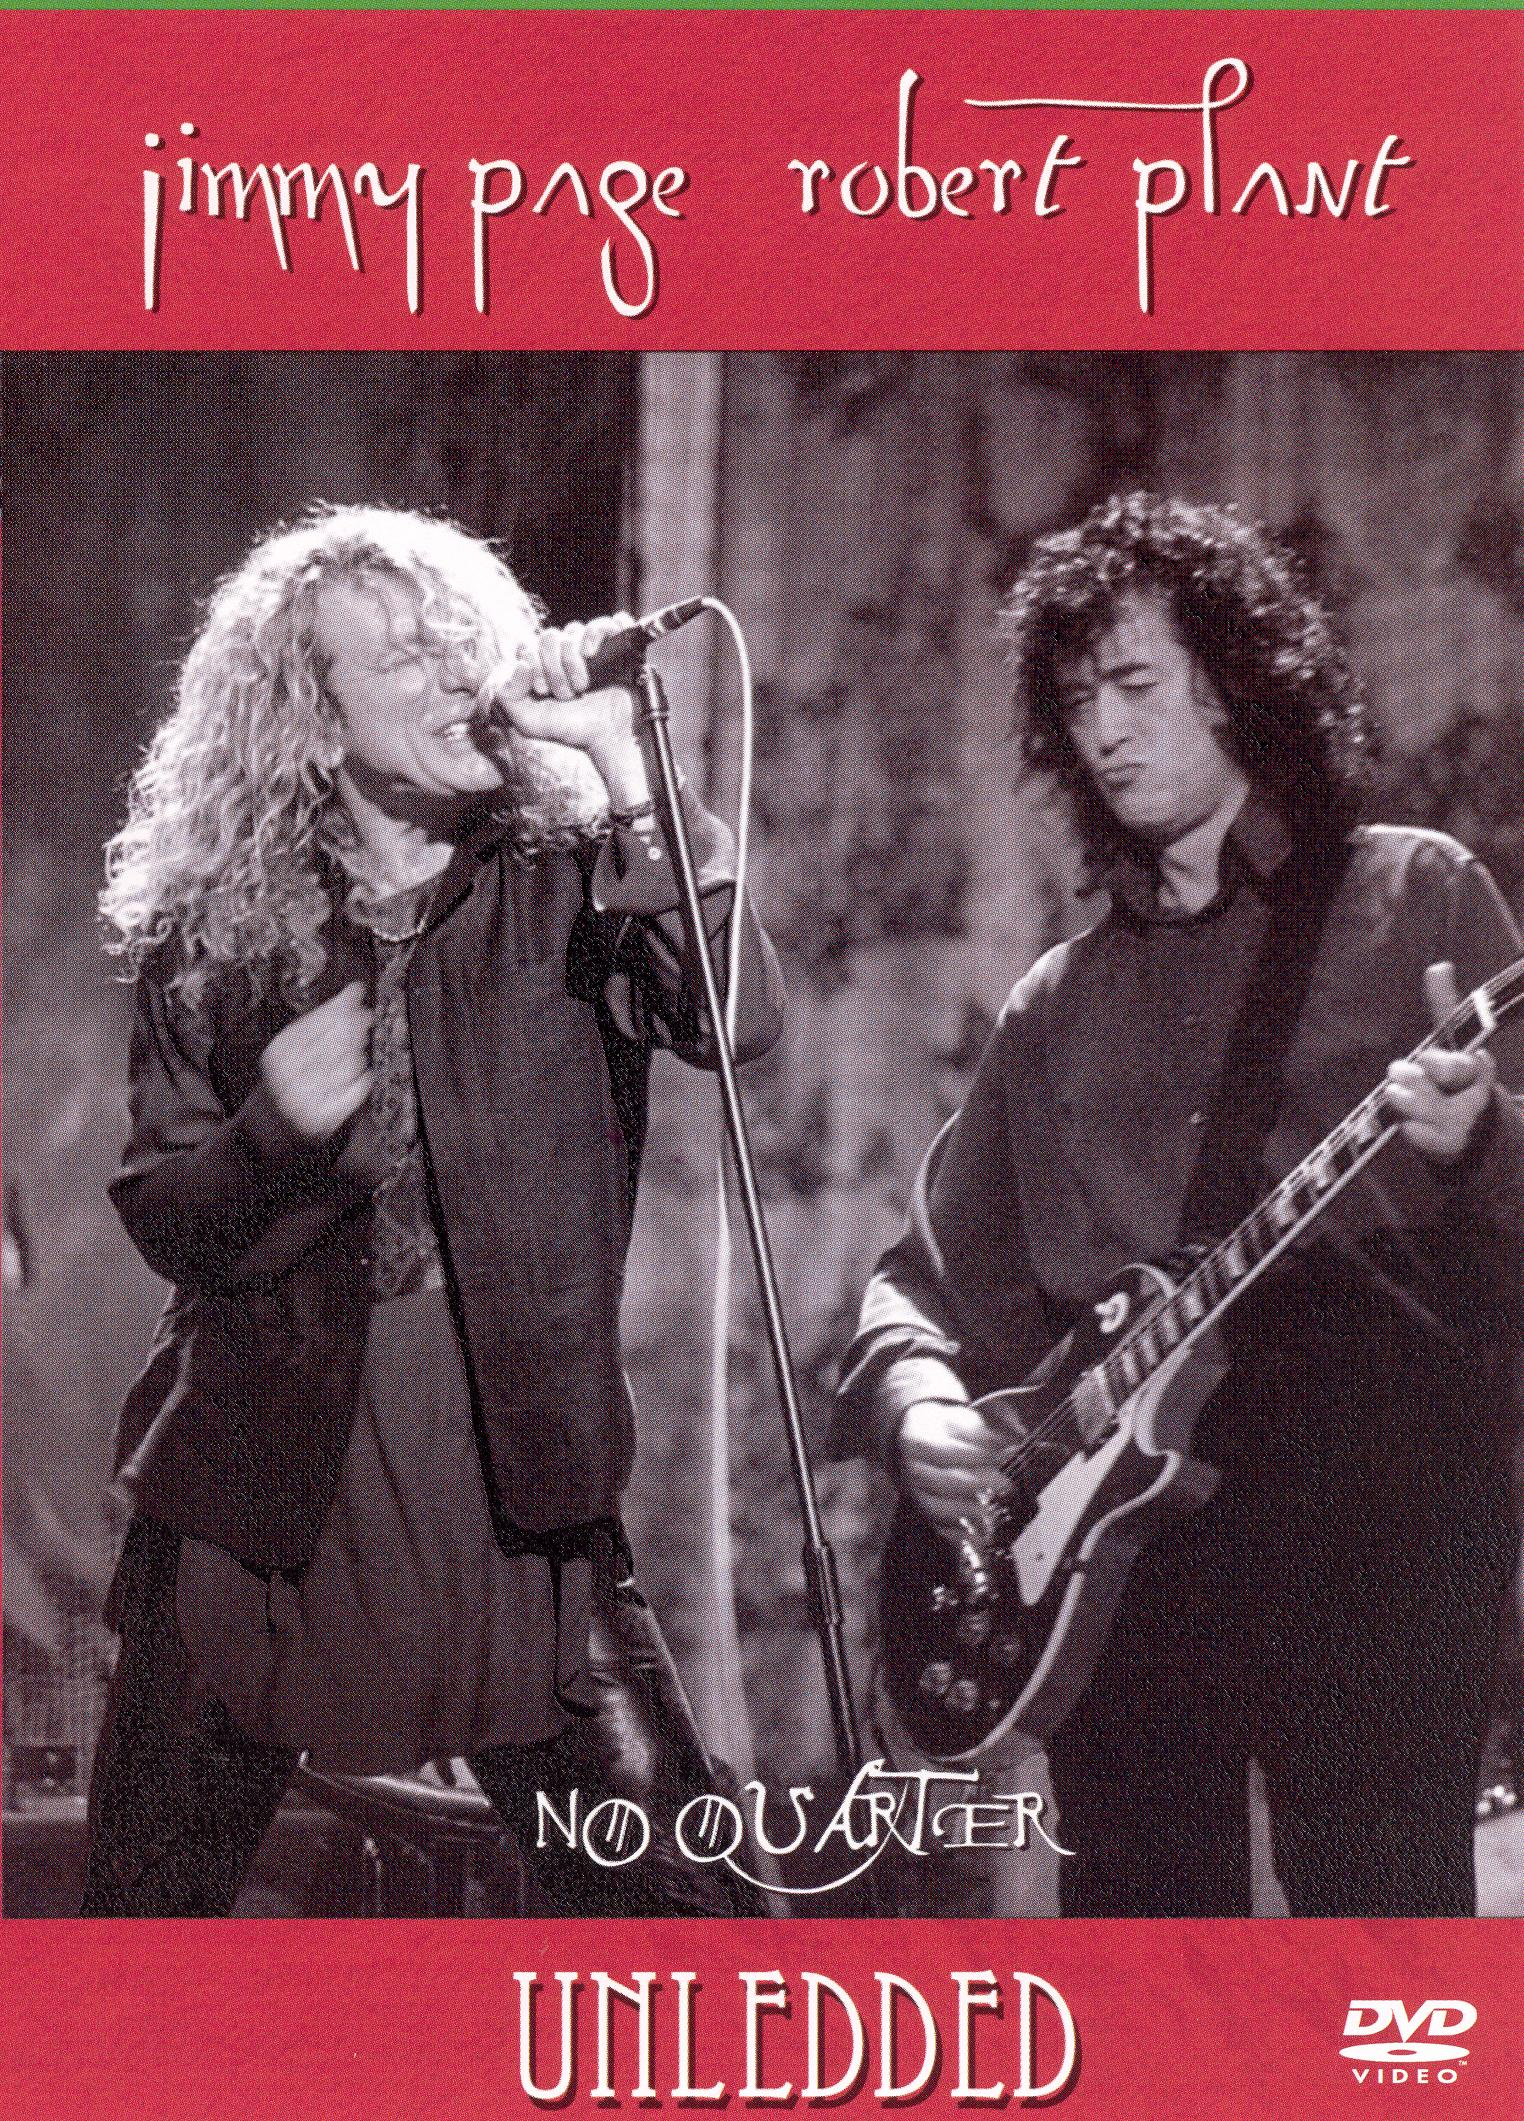 Jimmy Page and Robert Plant: No Quarter - Unledded